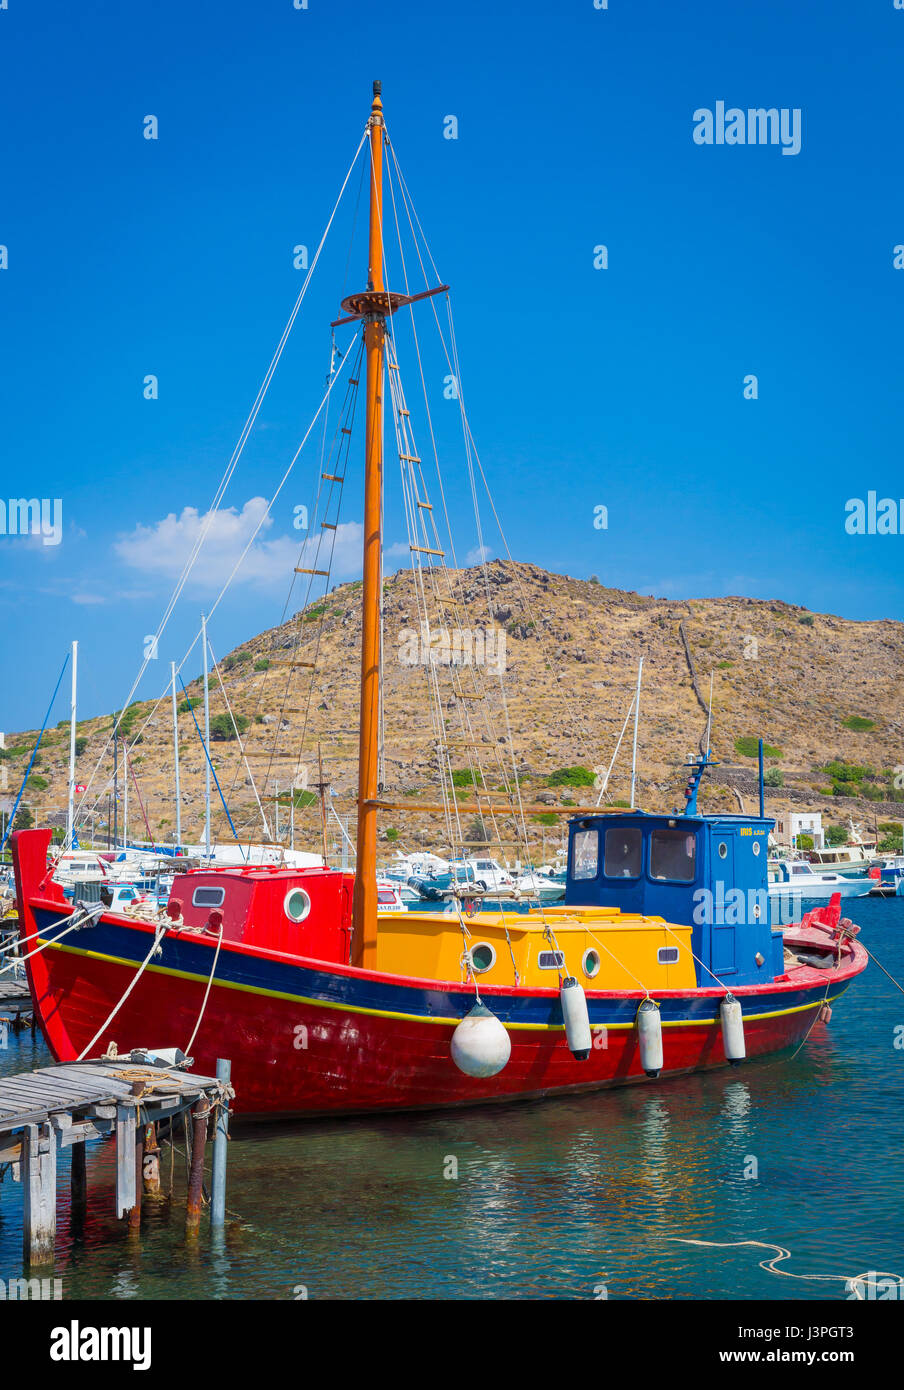 Boat in the harbor on the greek island of Patmos - Stock Image